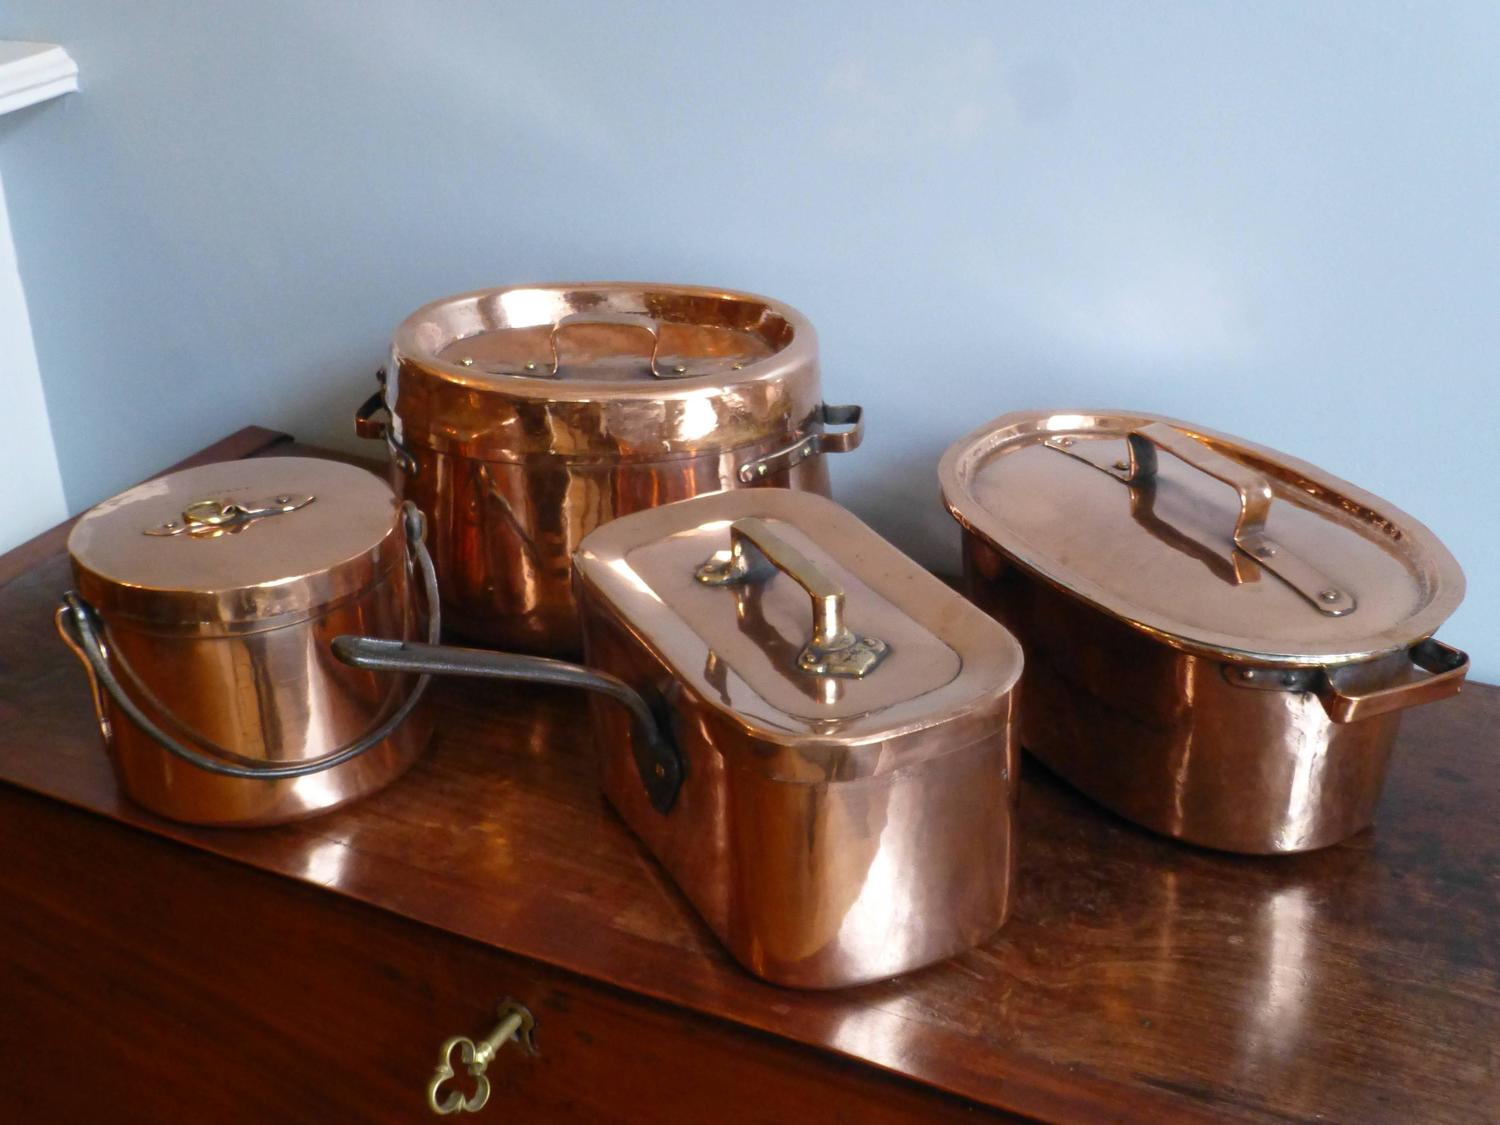 magnificent french set of re tinned copper pans copper. Black Bedroom Furniture Sets. Home Design Ideas